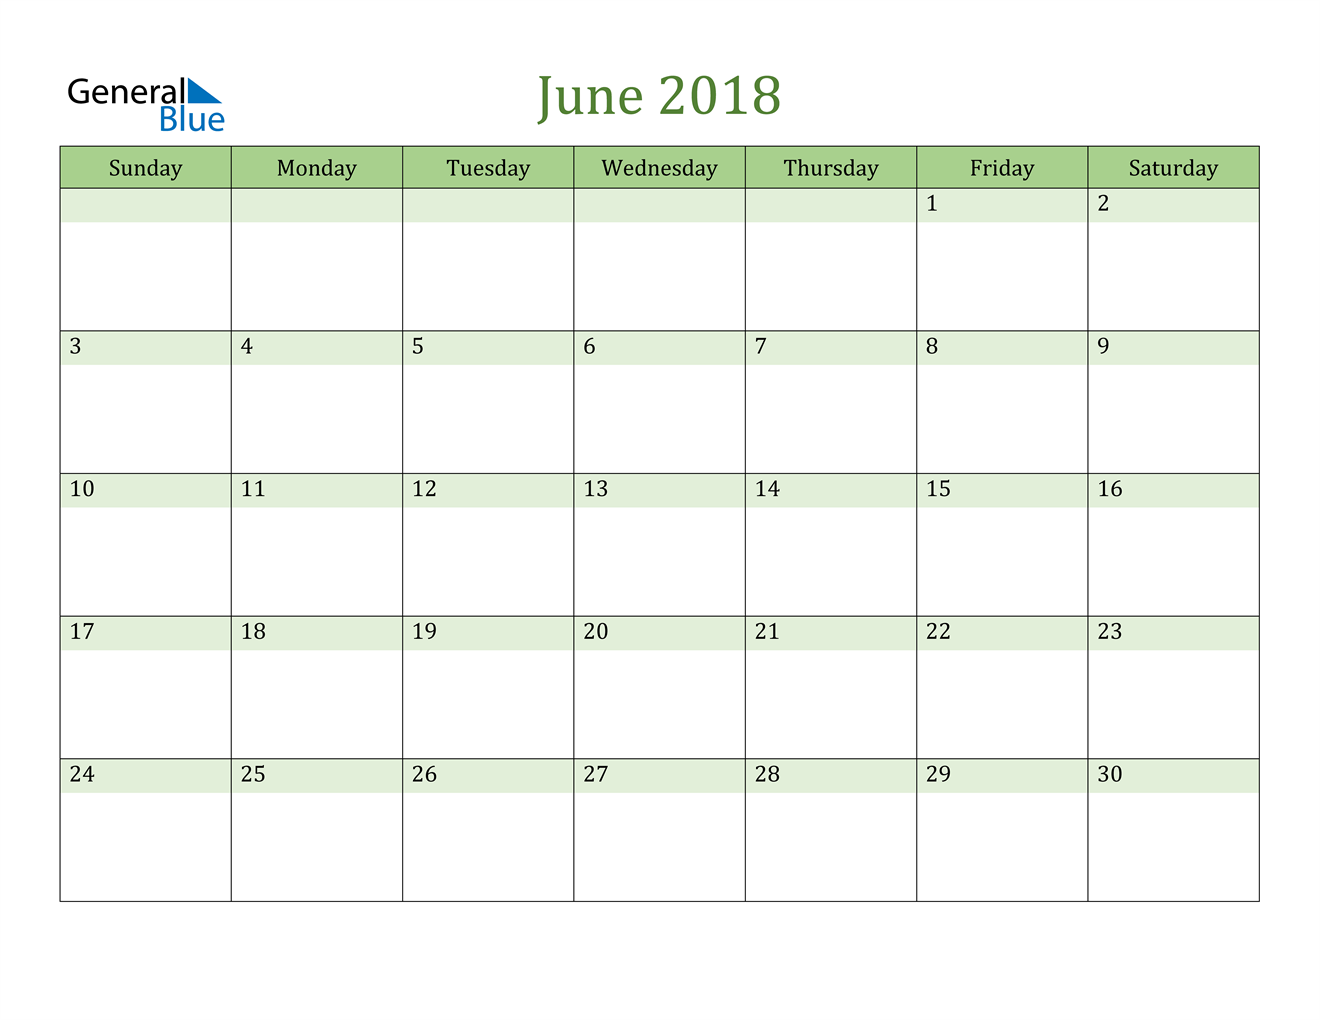 Image of June 2018 Cool and Relaxing Green Calendar Calendar